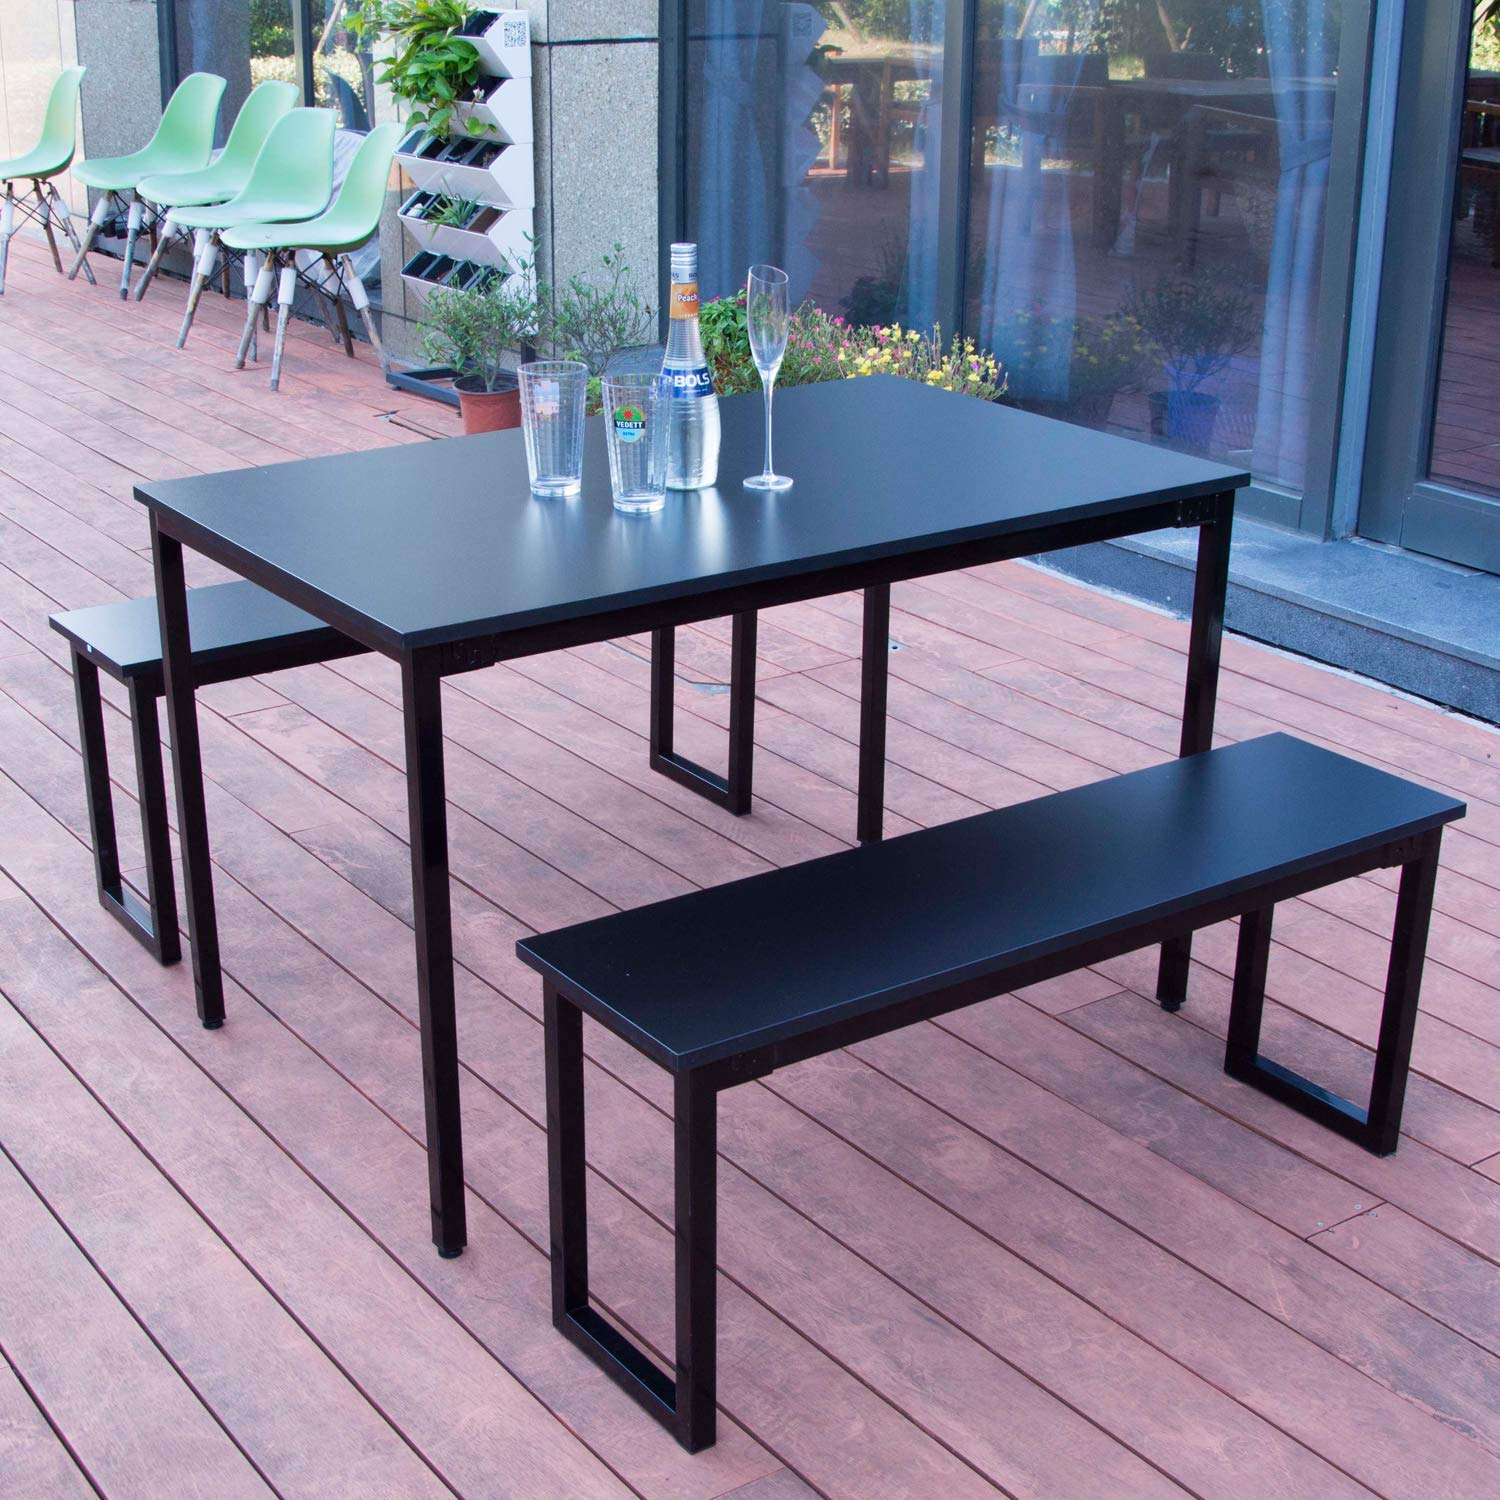 Cheap Modern Picnic Benches Find Modern Picnic Benches Deals On Line At Alibaba Com